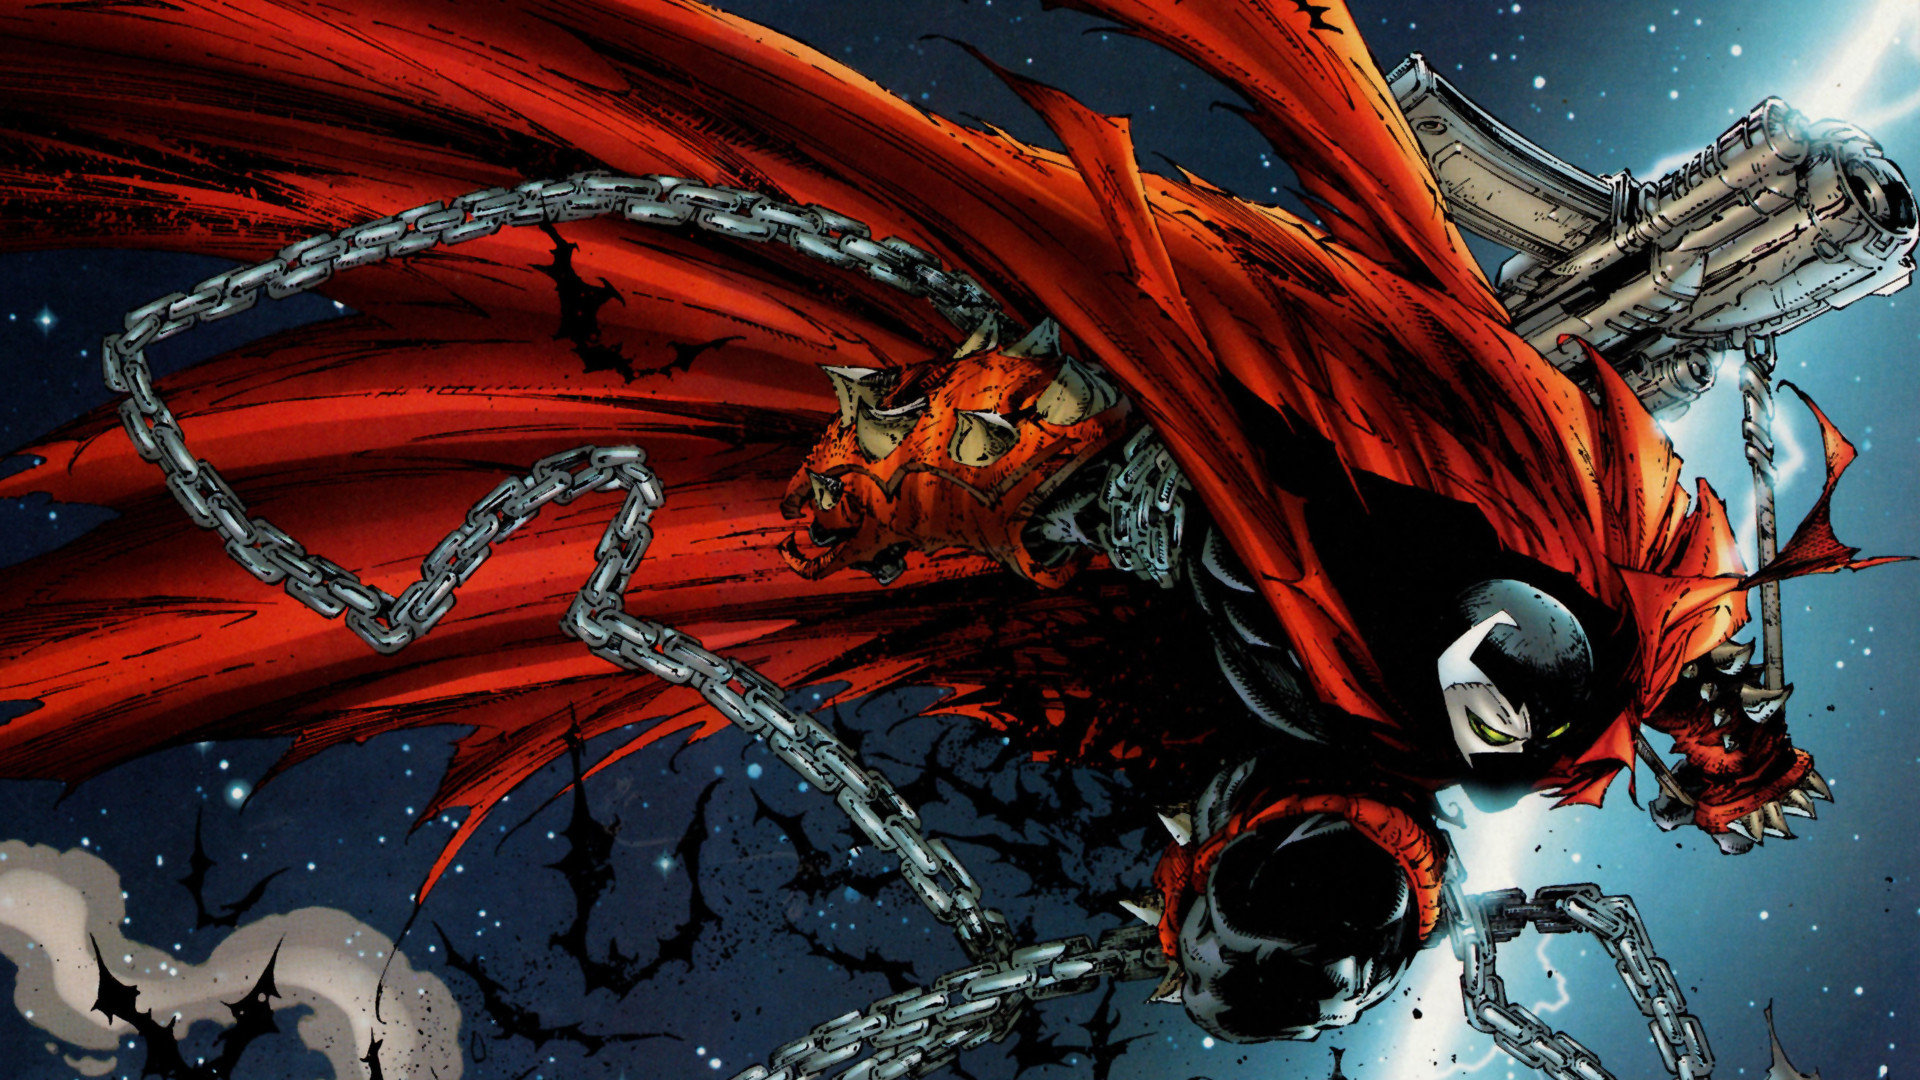 Res: 1920x1080, Hellspawn Wallpaper Picture